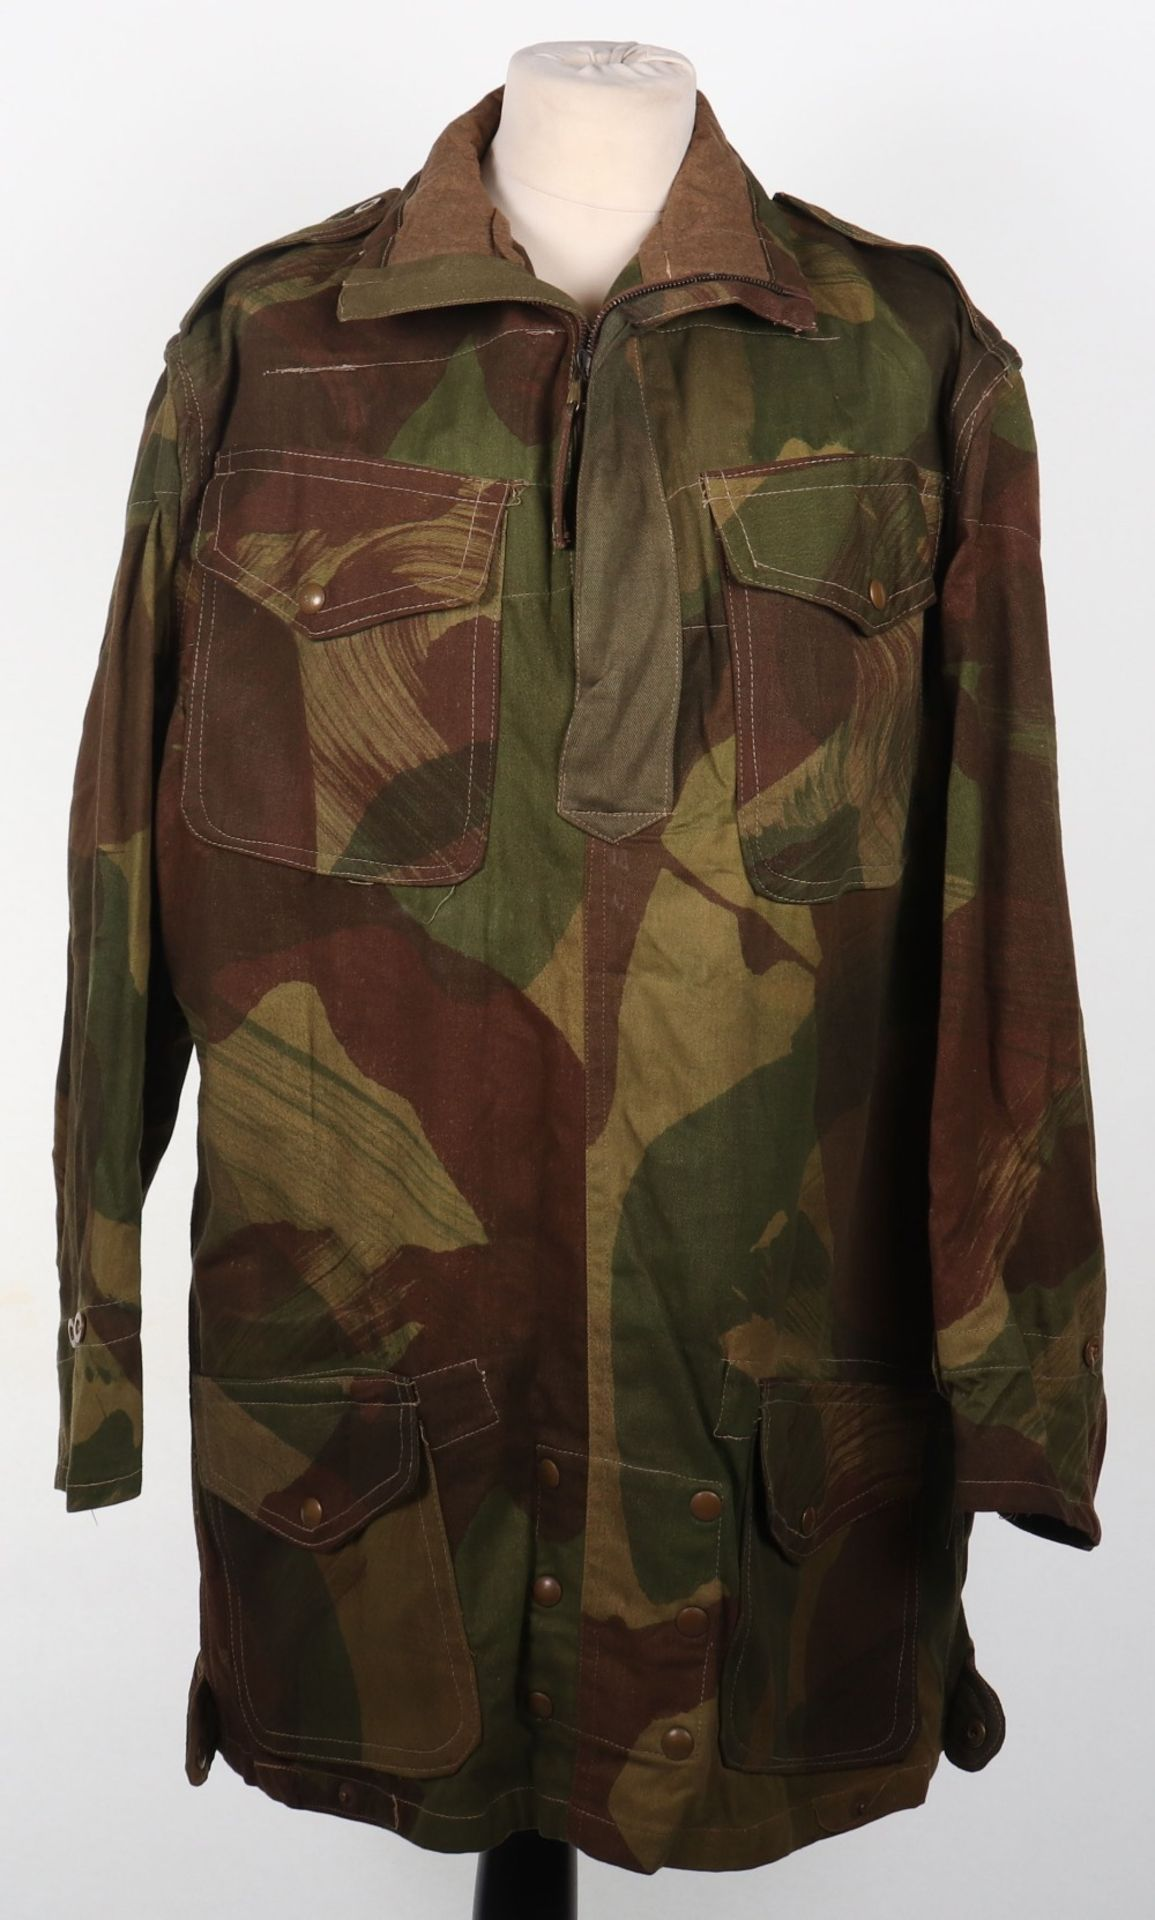 Mint Condition Large Size Airborne Forces Denison Smock